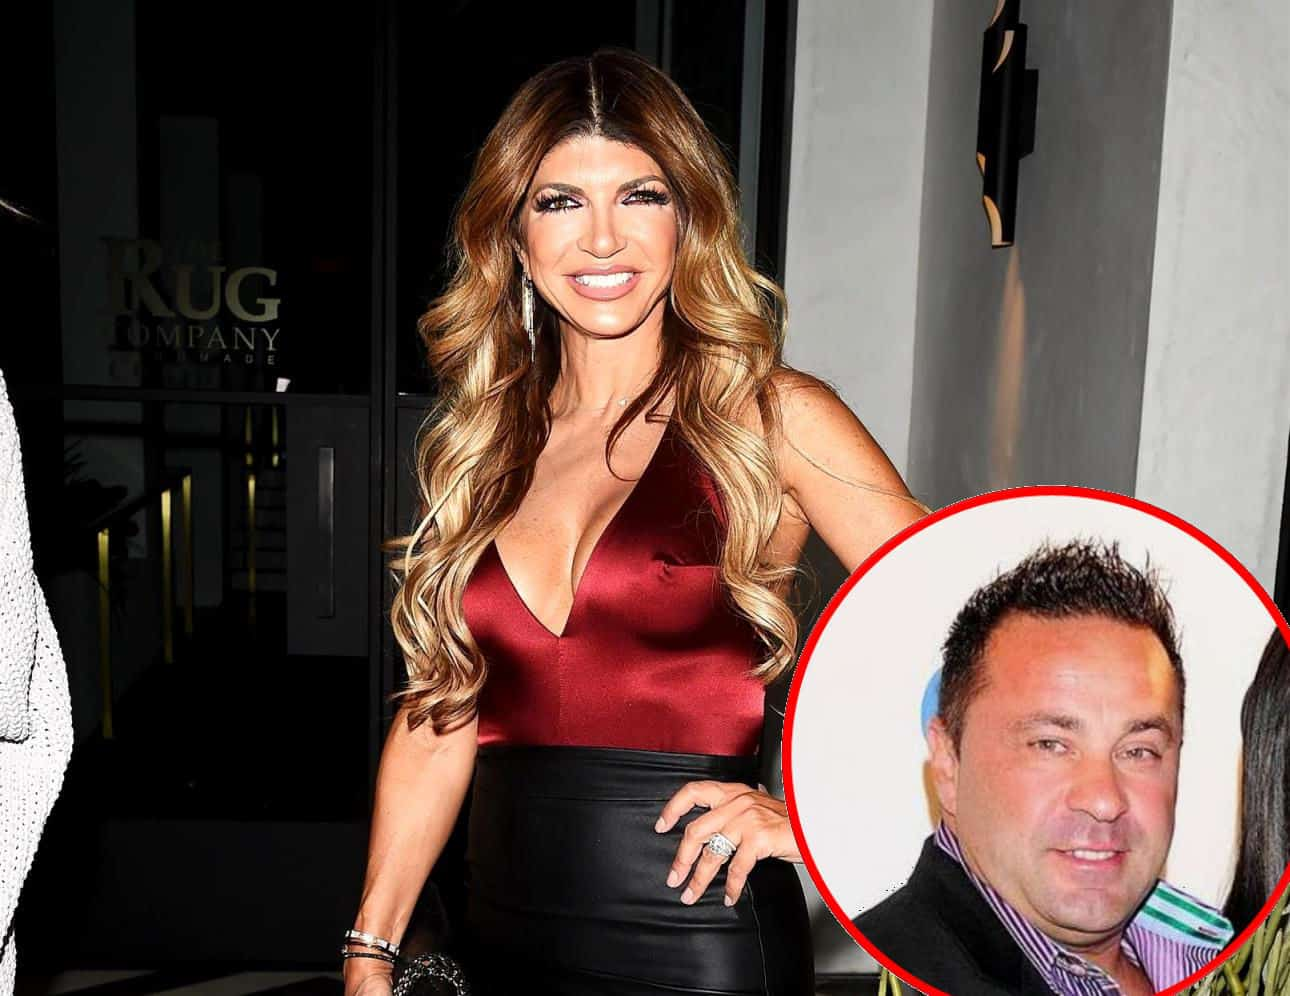 RHONJ's Teresa Giudice Feels 'Trapped' In Her Marriage To Joe